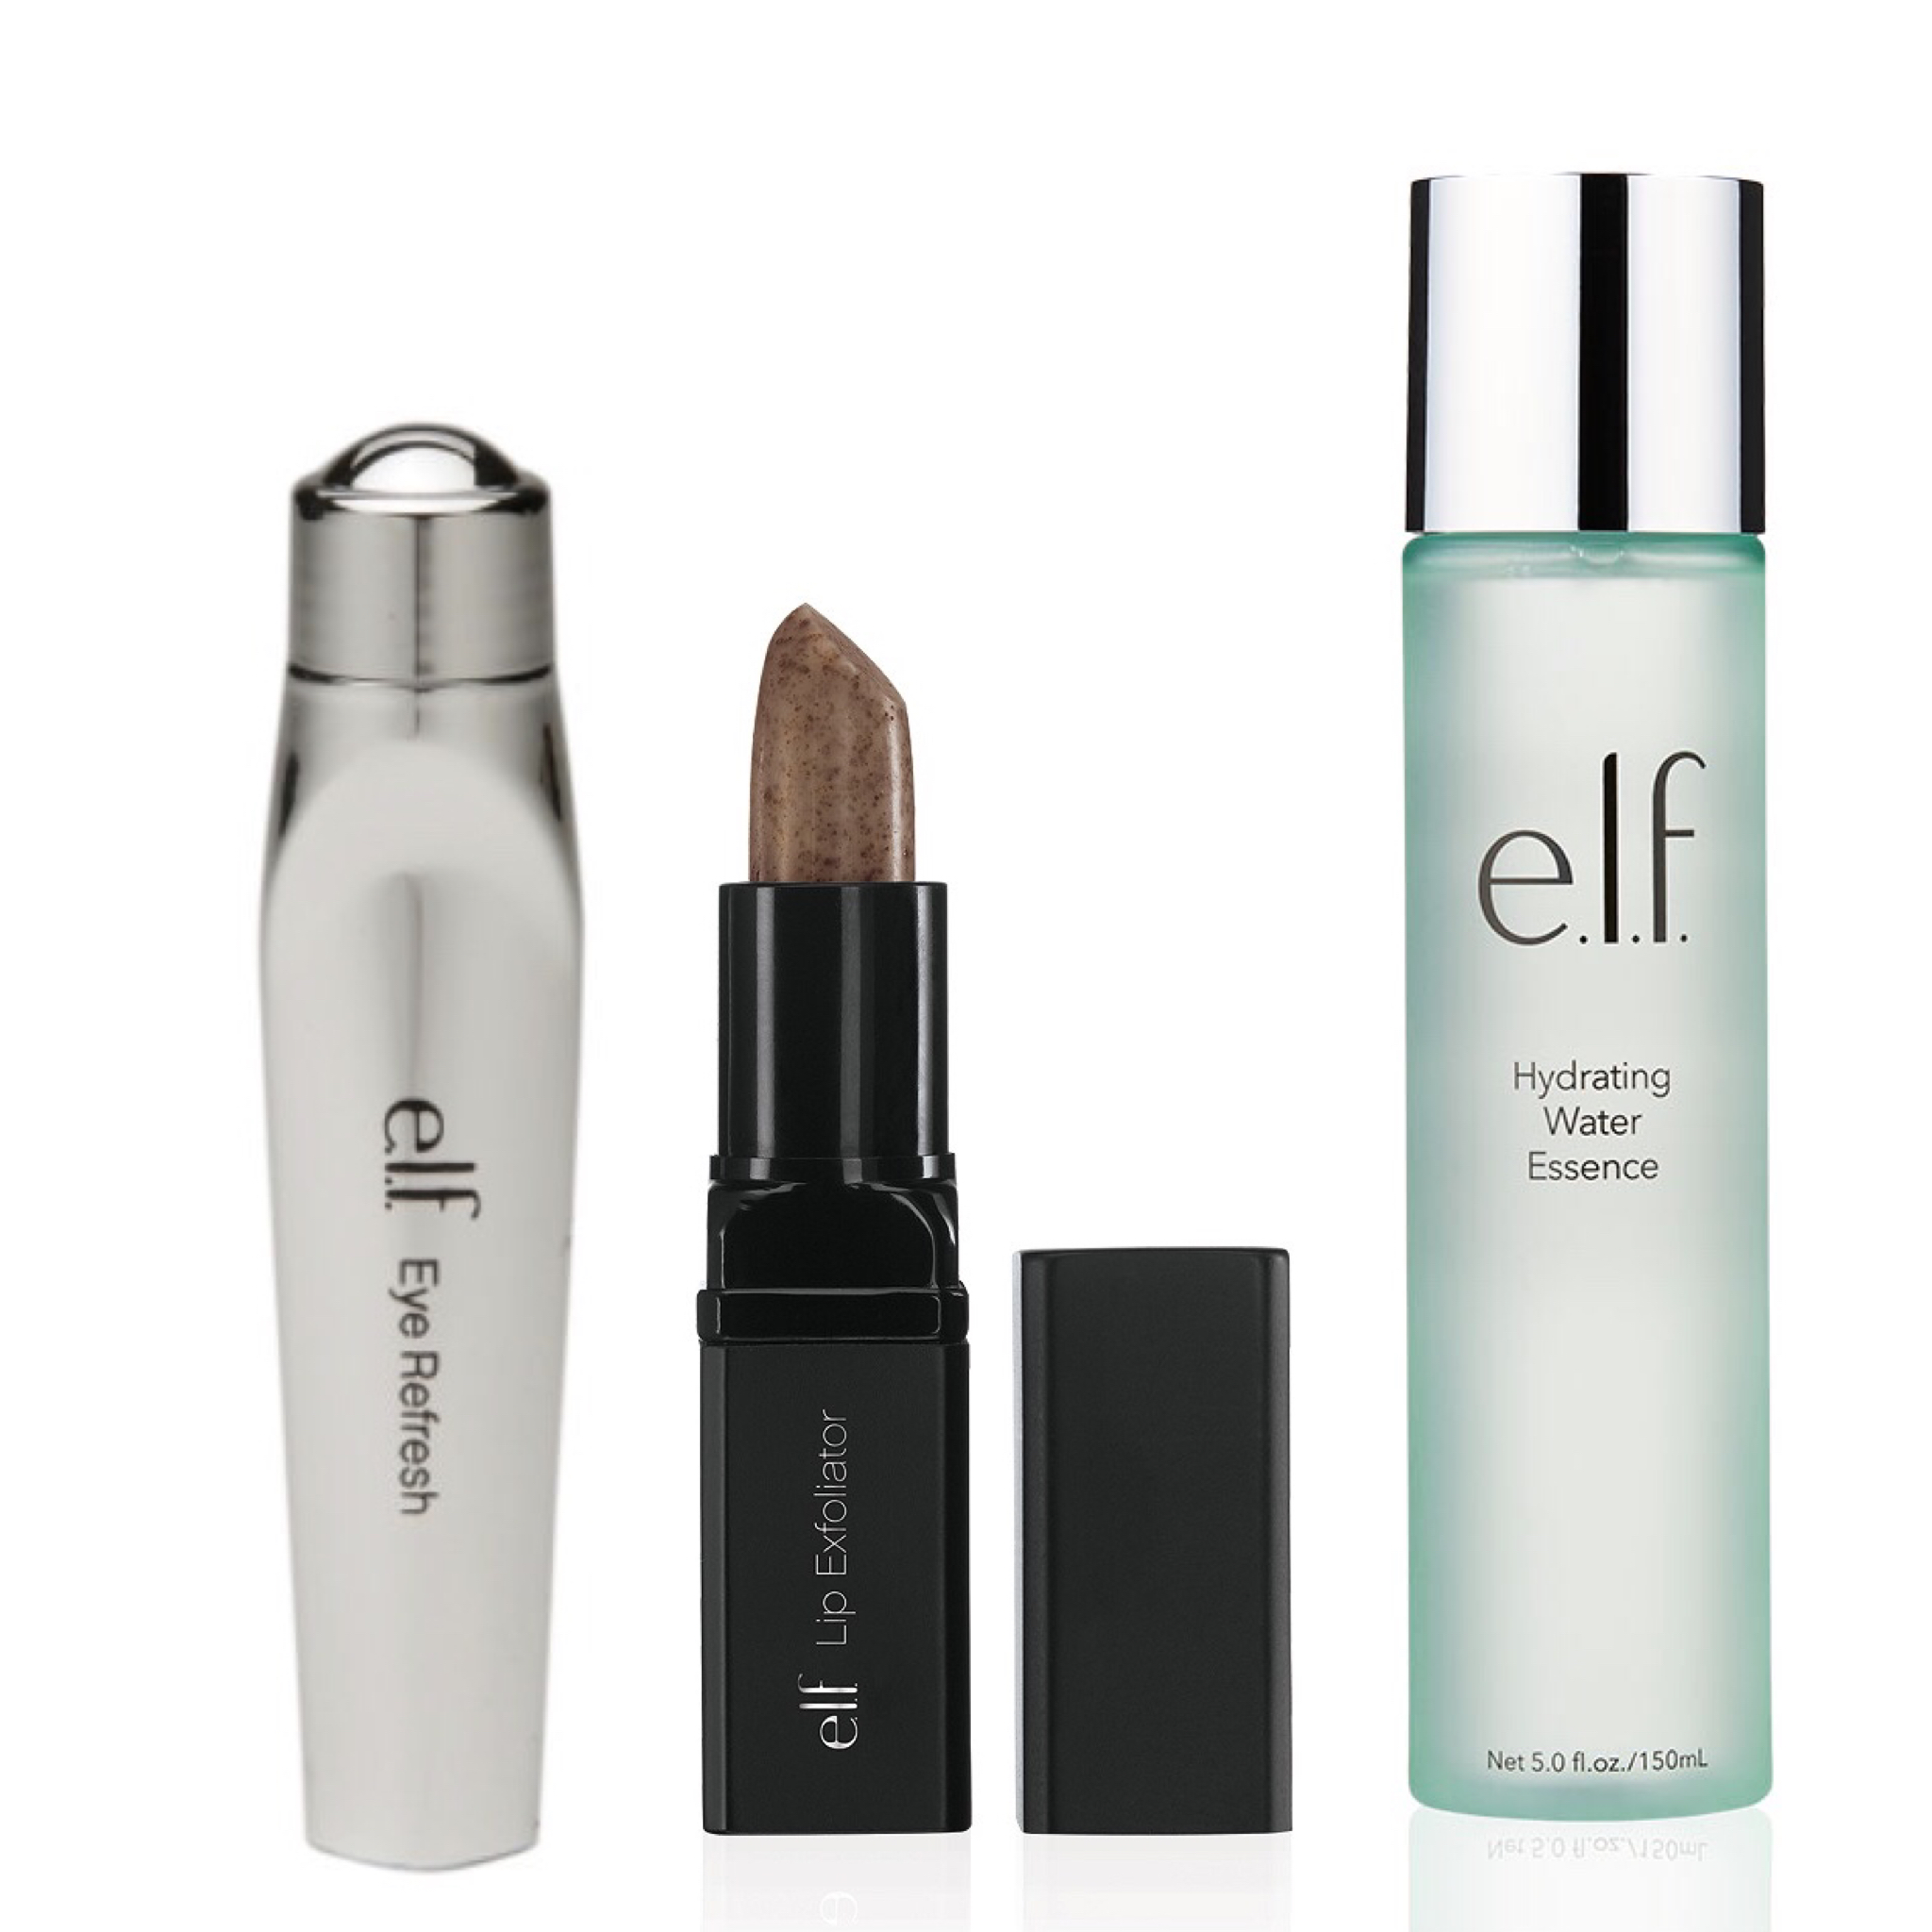 e.l.f. Skincare Products: Eye Refresh, Lip Exfoliator, Hydrating Water Essence